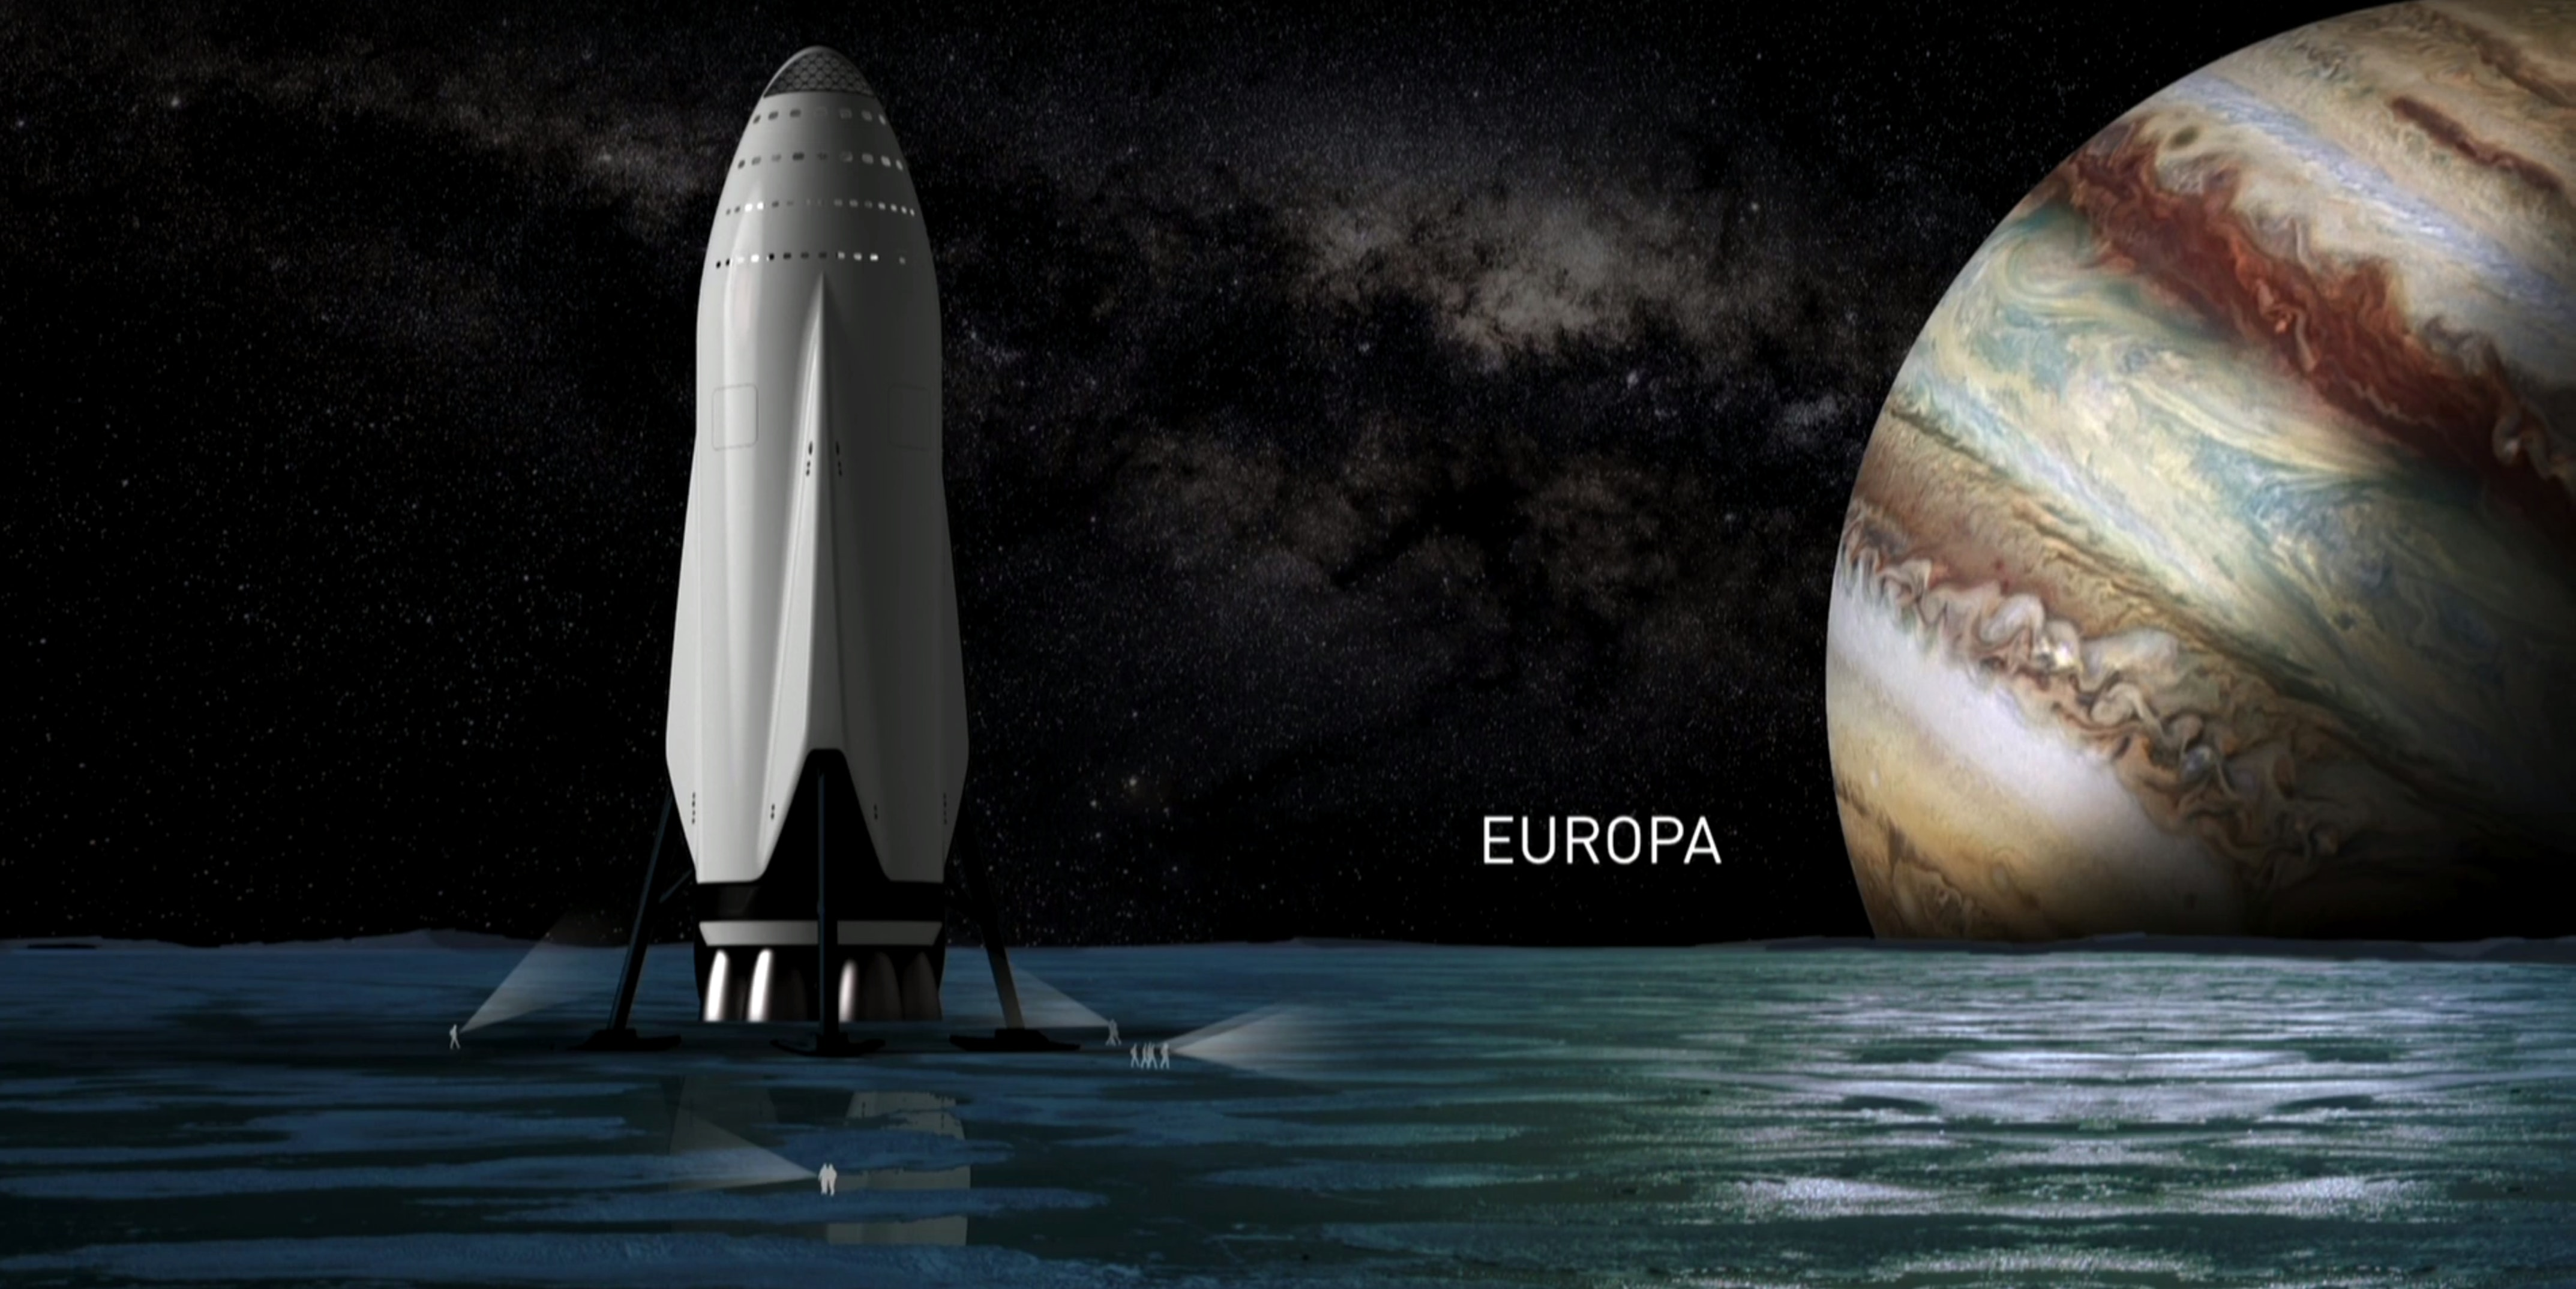 Elon Musk has plans to go beyond Mars as well.